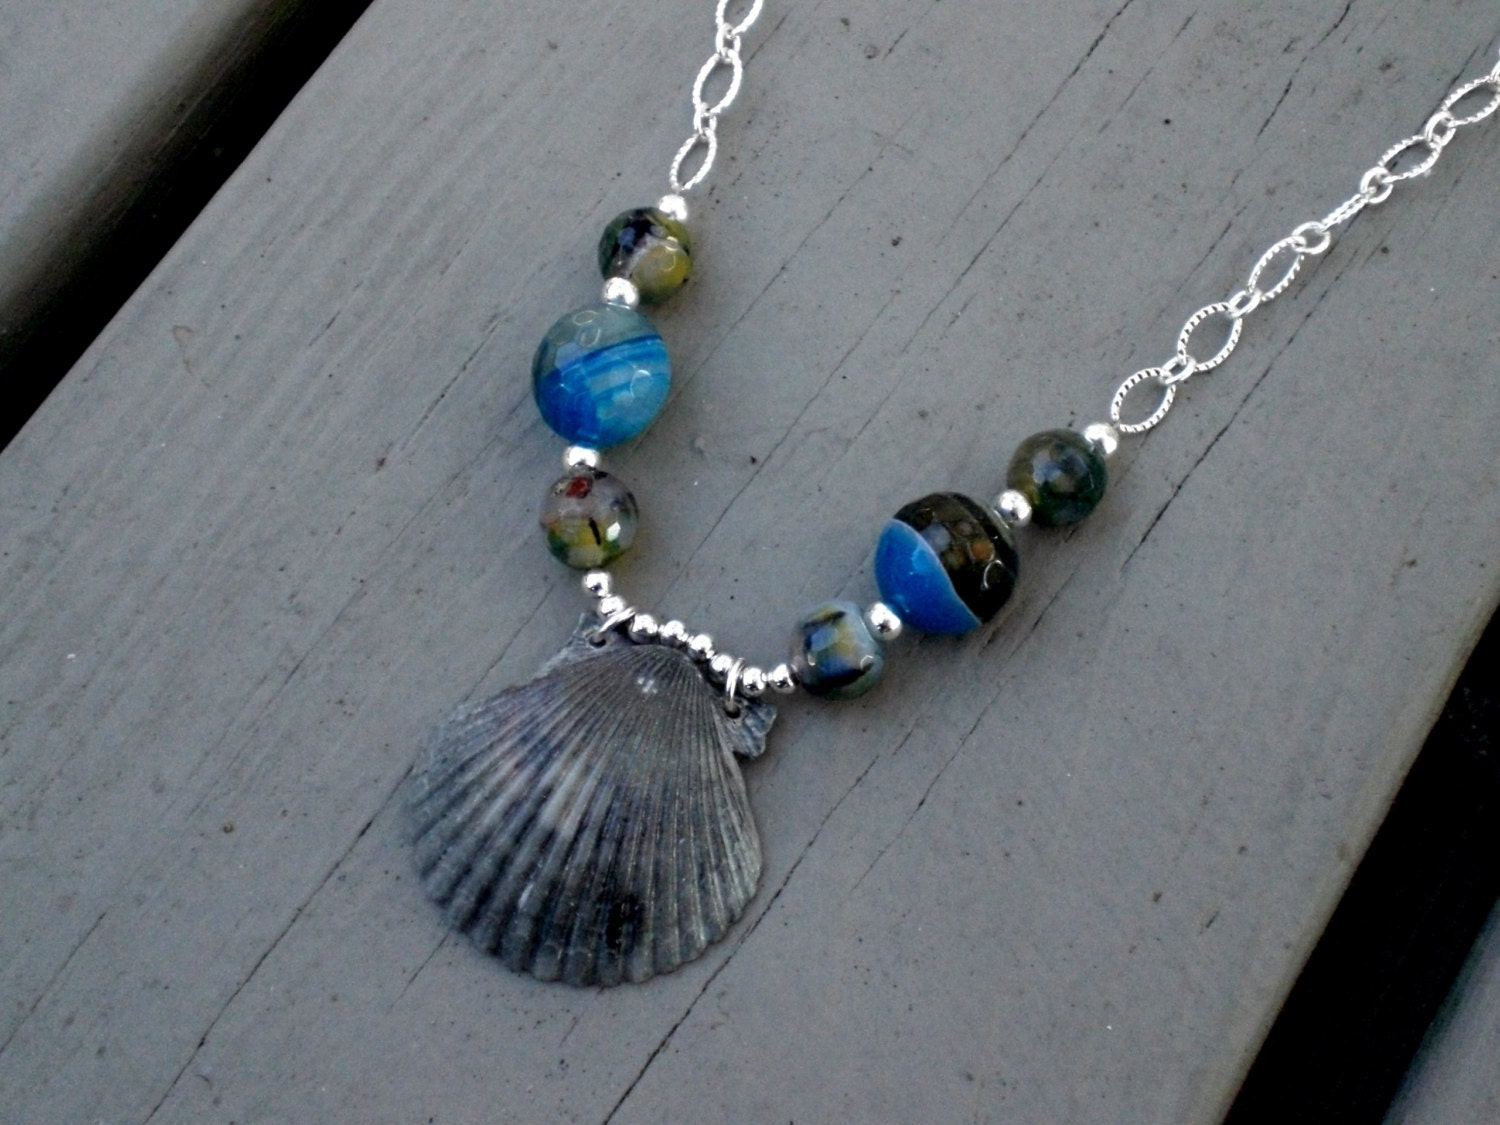 Stormy Seas - Natural Grey Black Sea Scallop & Blue Vein Agate bead silver chain necklace - exotic beach jewelry - phoebemoll